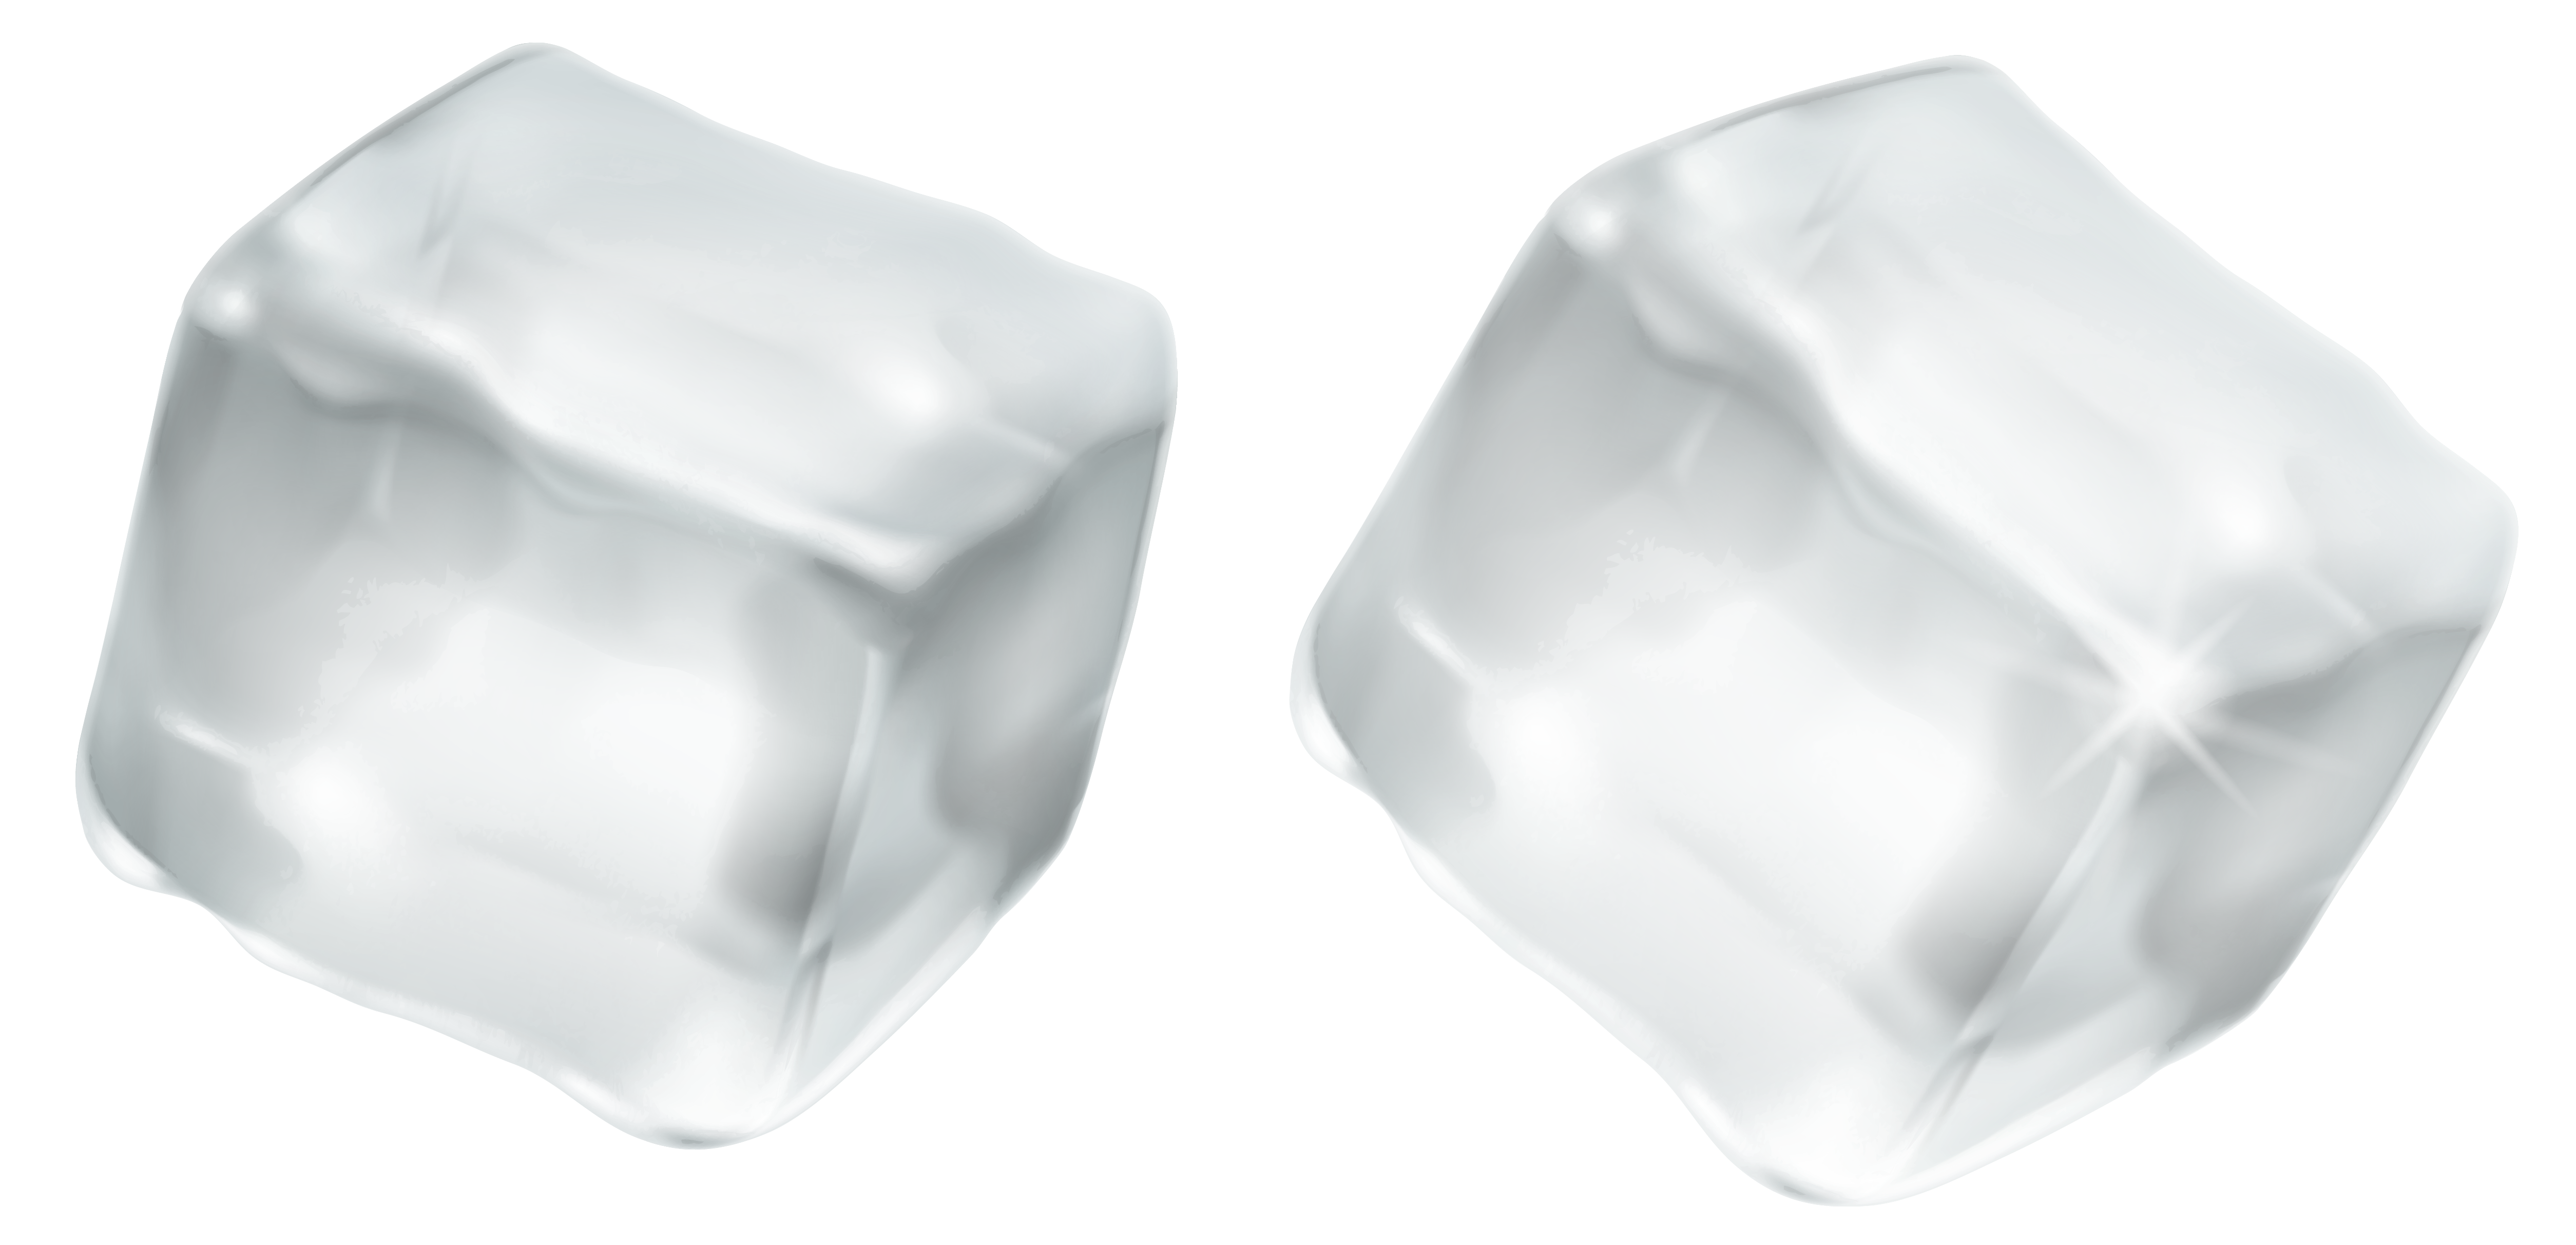 Clipart cube ice melting in the sun jpg free download Ice PNG image jpg free download